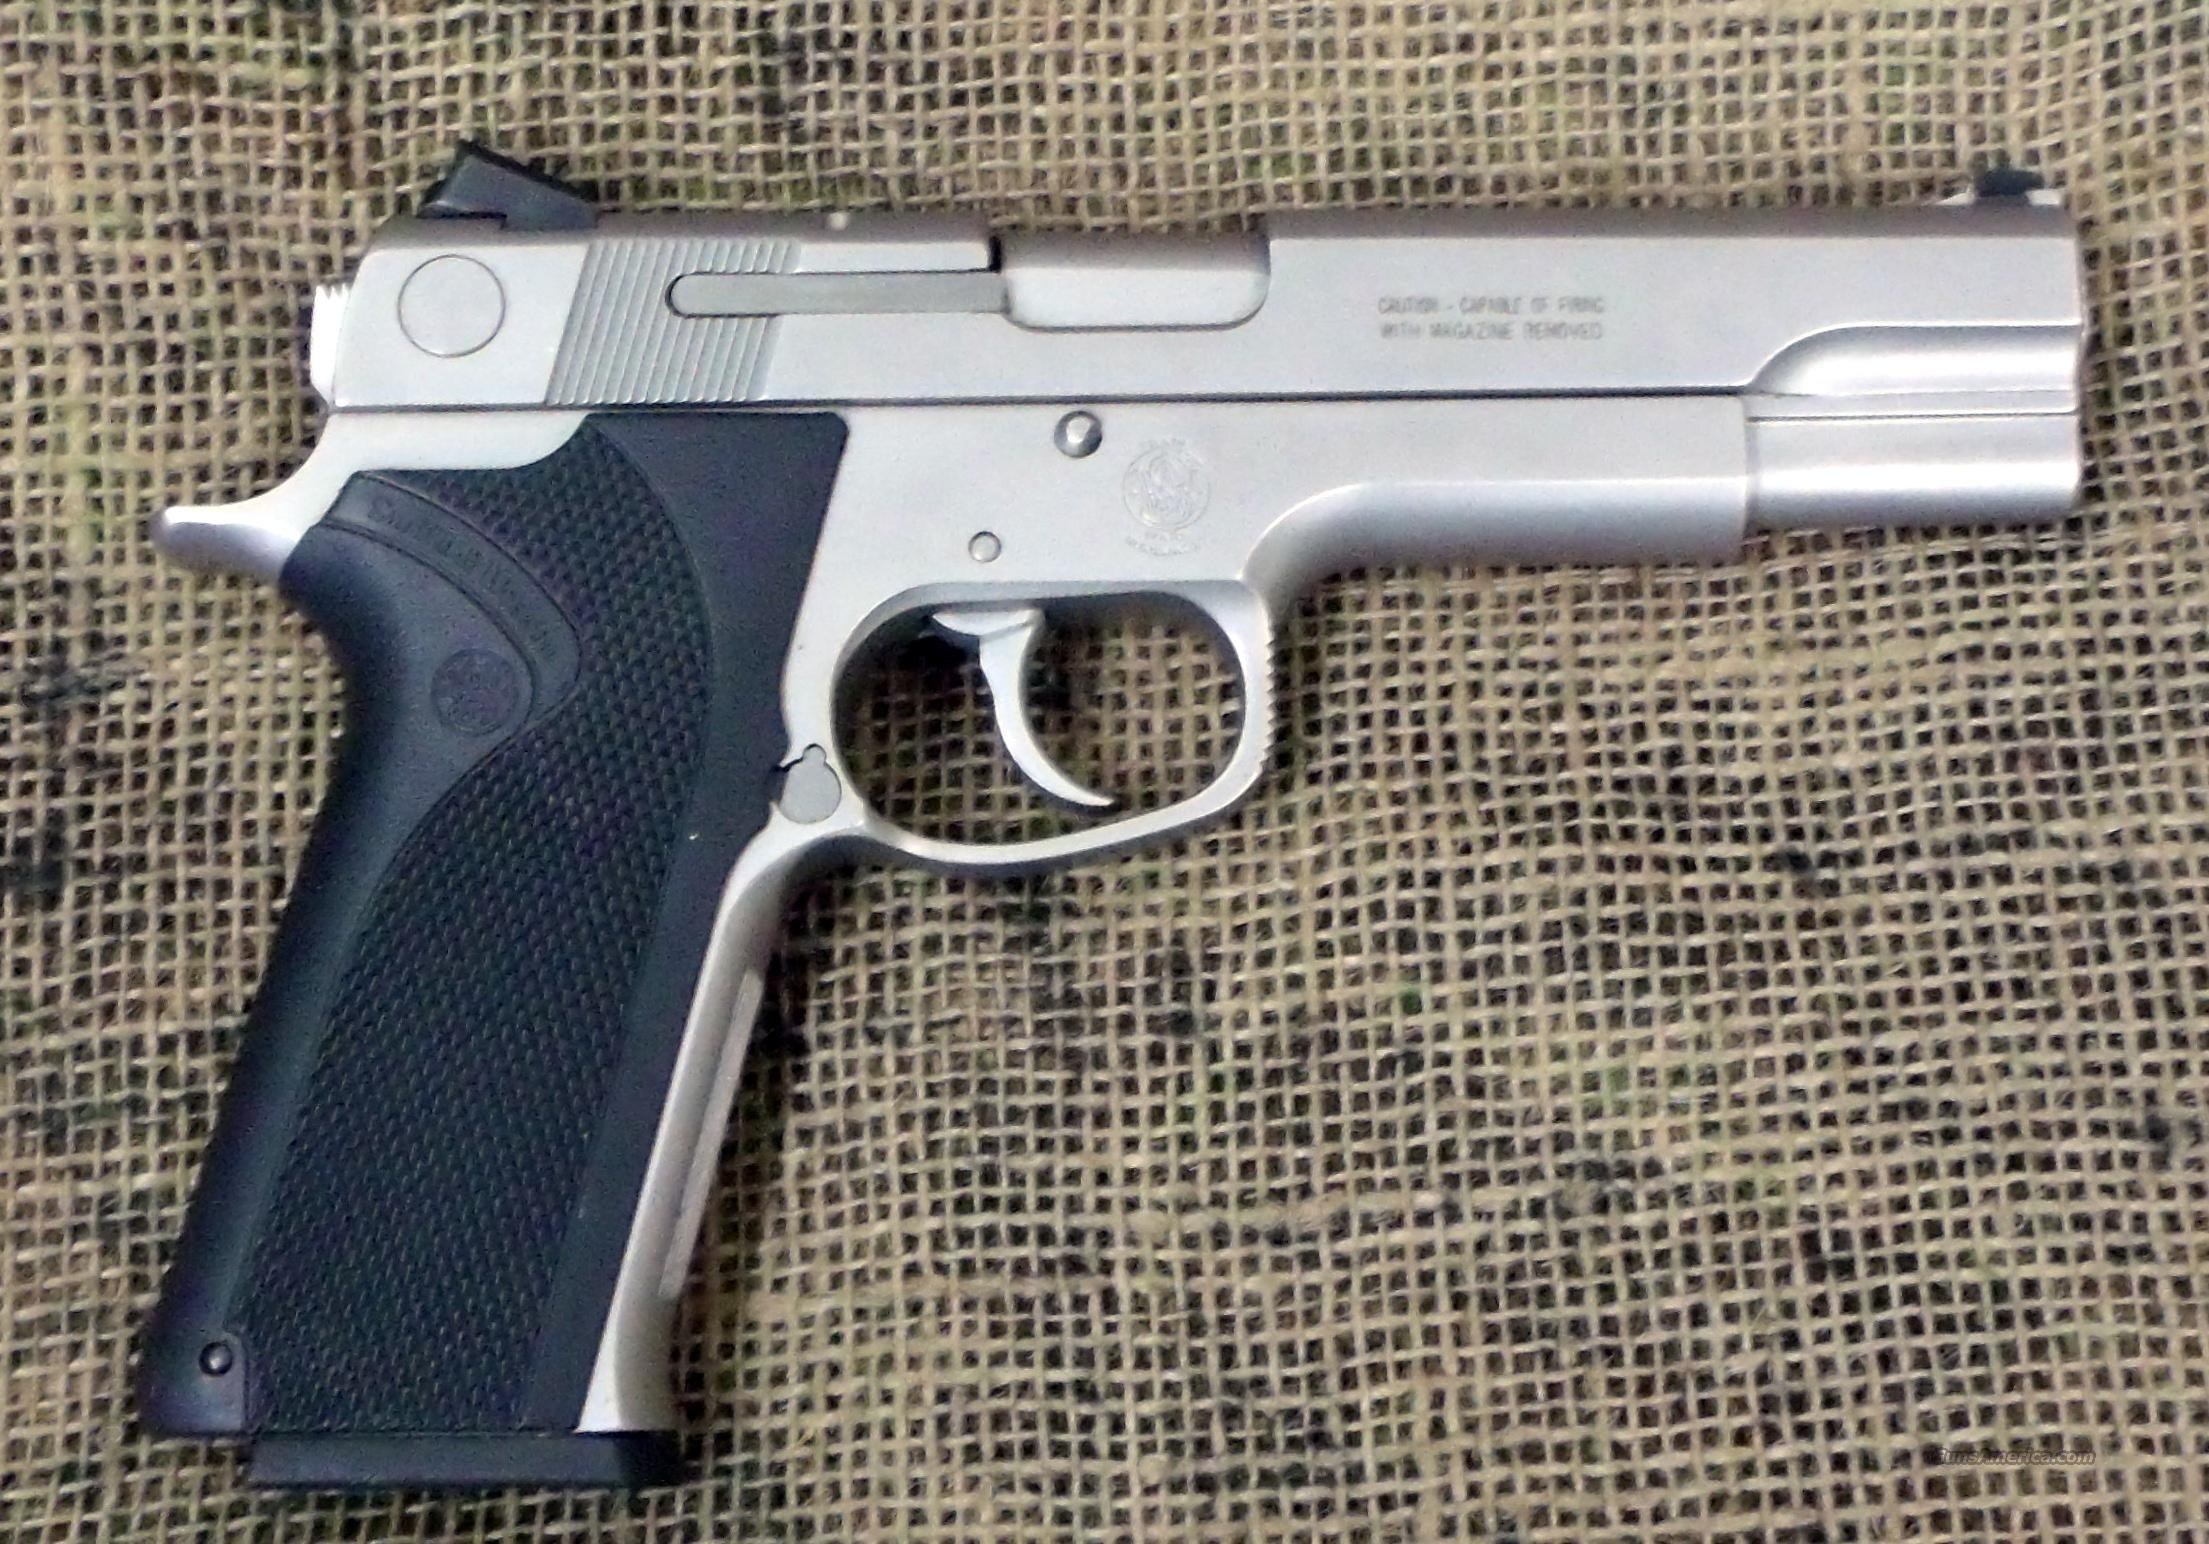 SMITH & WESSON  Model 1026 Pistol, 10mm Auto Cal.  Guns > Pistols > Smith & Wesson Pistols - Autos > Steel Frame